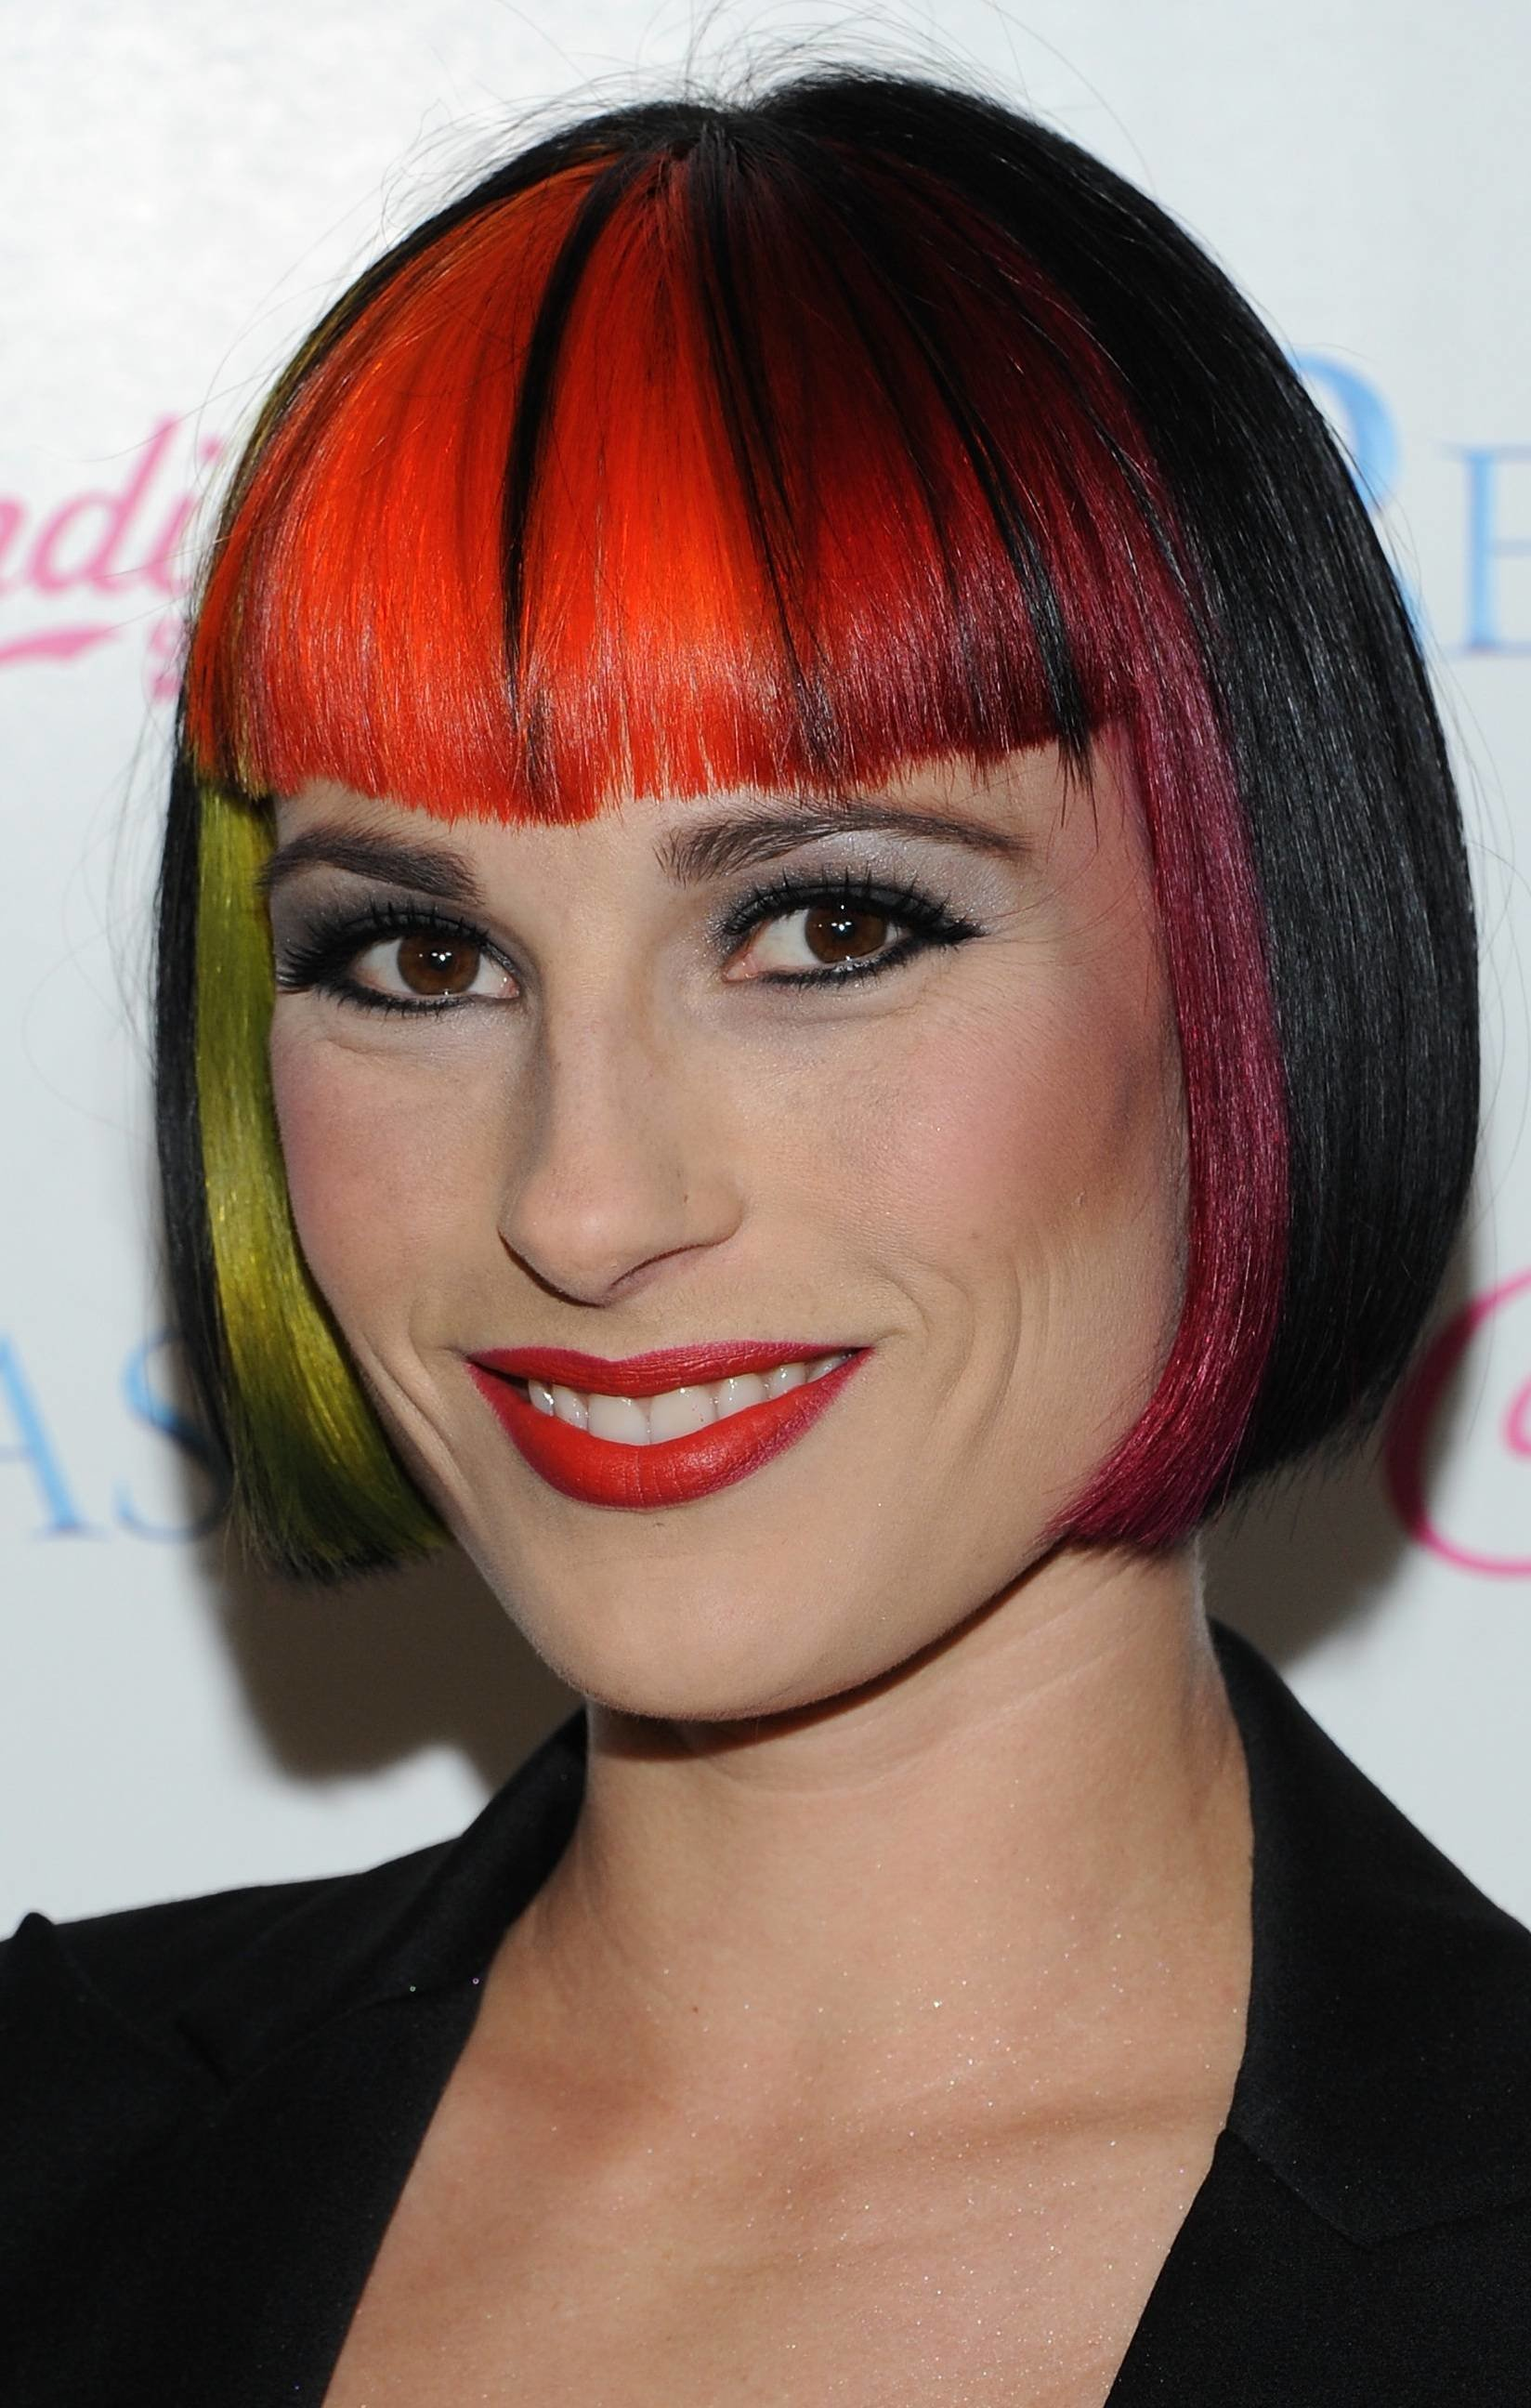 New The 6 Hottest Hair Color Trends For 2013 She Wears Blog Ideas With Pictures